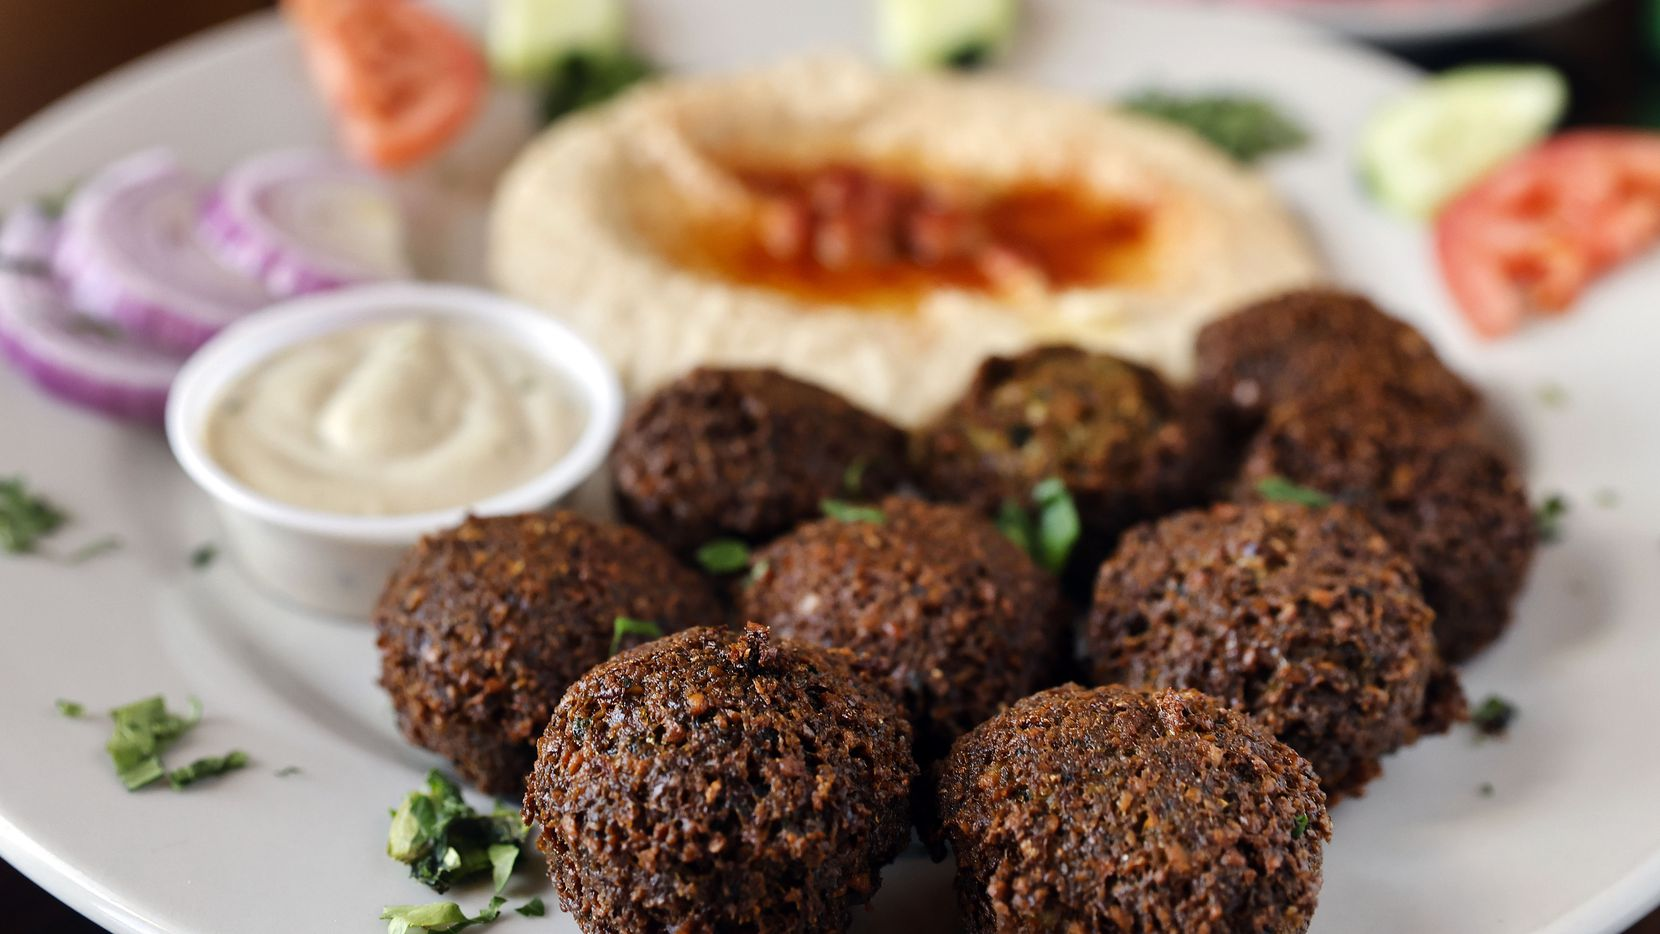 The falafel plate served with homemade hummus made with chickpeas and topped with paprika is served at Aladdin Mediterranean Cafe in Fort Worth.